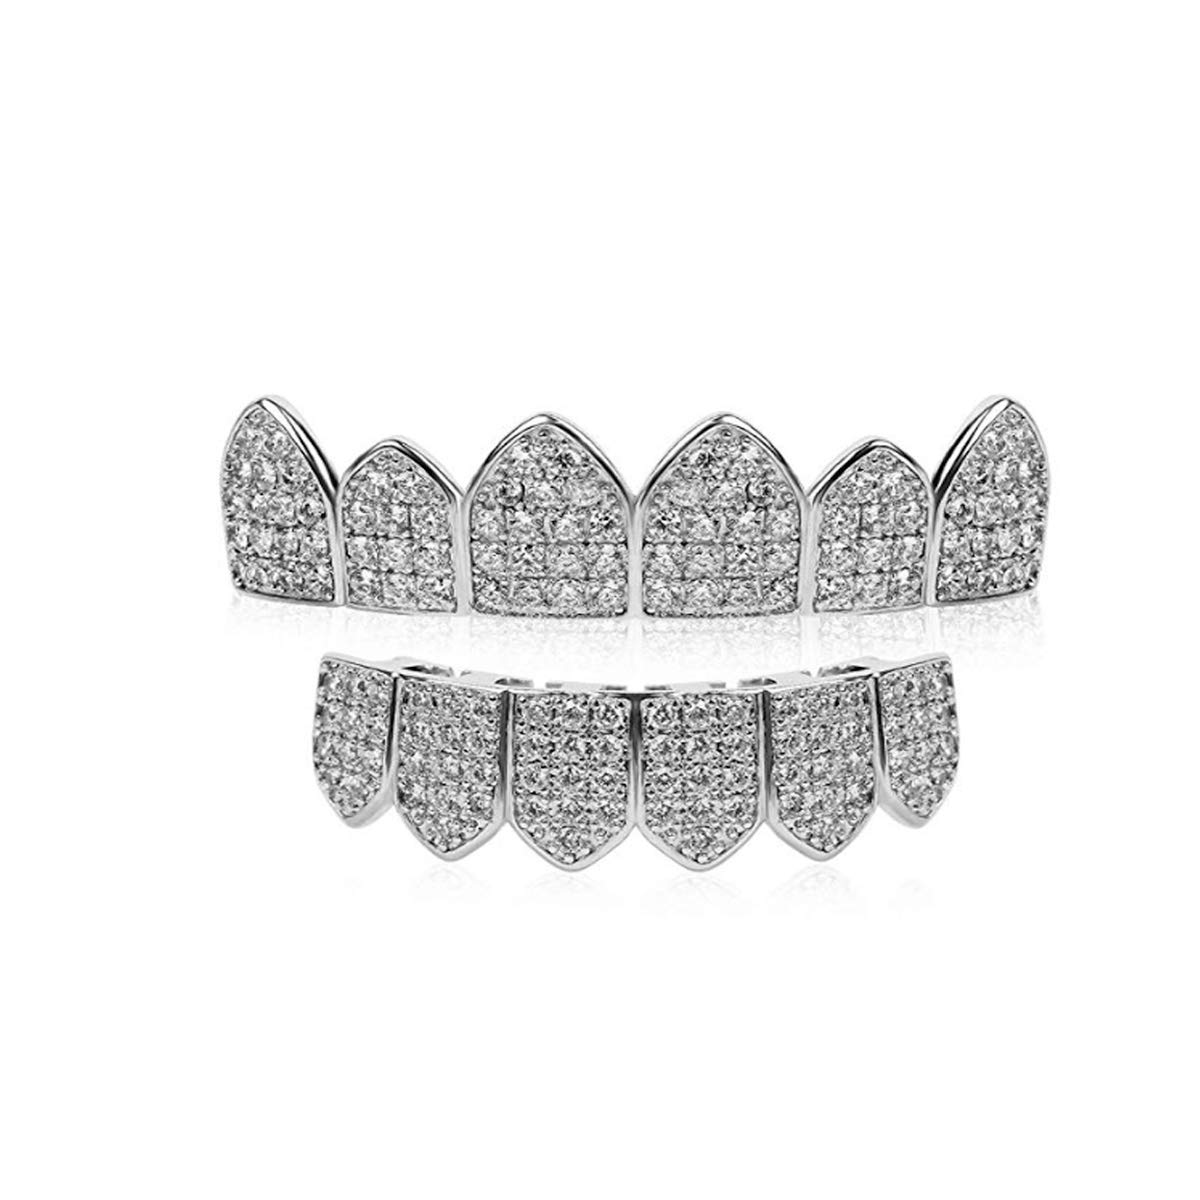 18K White Gold Plated CZ Cluster Custom Slugs Top Bottom Grillz Mouth Teeth Grills Set - Grillz, Teeth Cap, Iced Out Grillz by Zilver